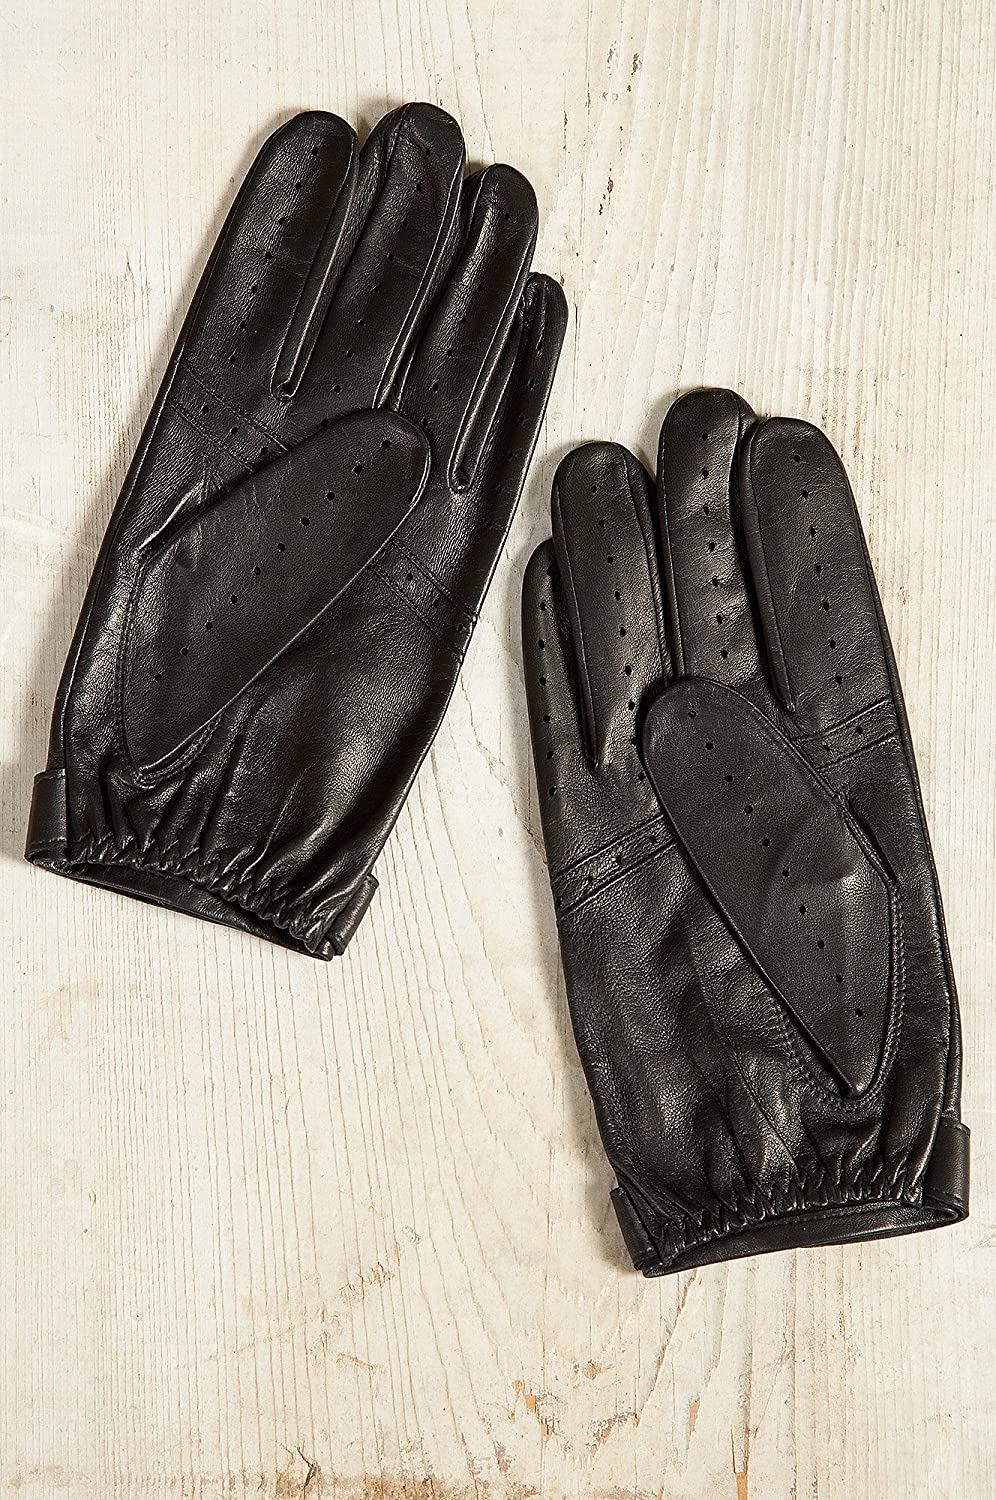 James bond leather driving gloves - Men S Dents Fleming James Bond Spectre Leather Driving Gloves Black Size Small 7 5 8 At Amazon Men S Clothing Store